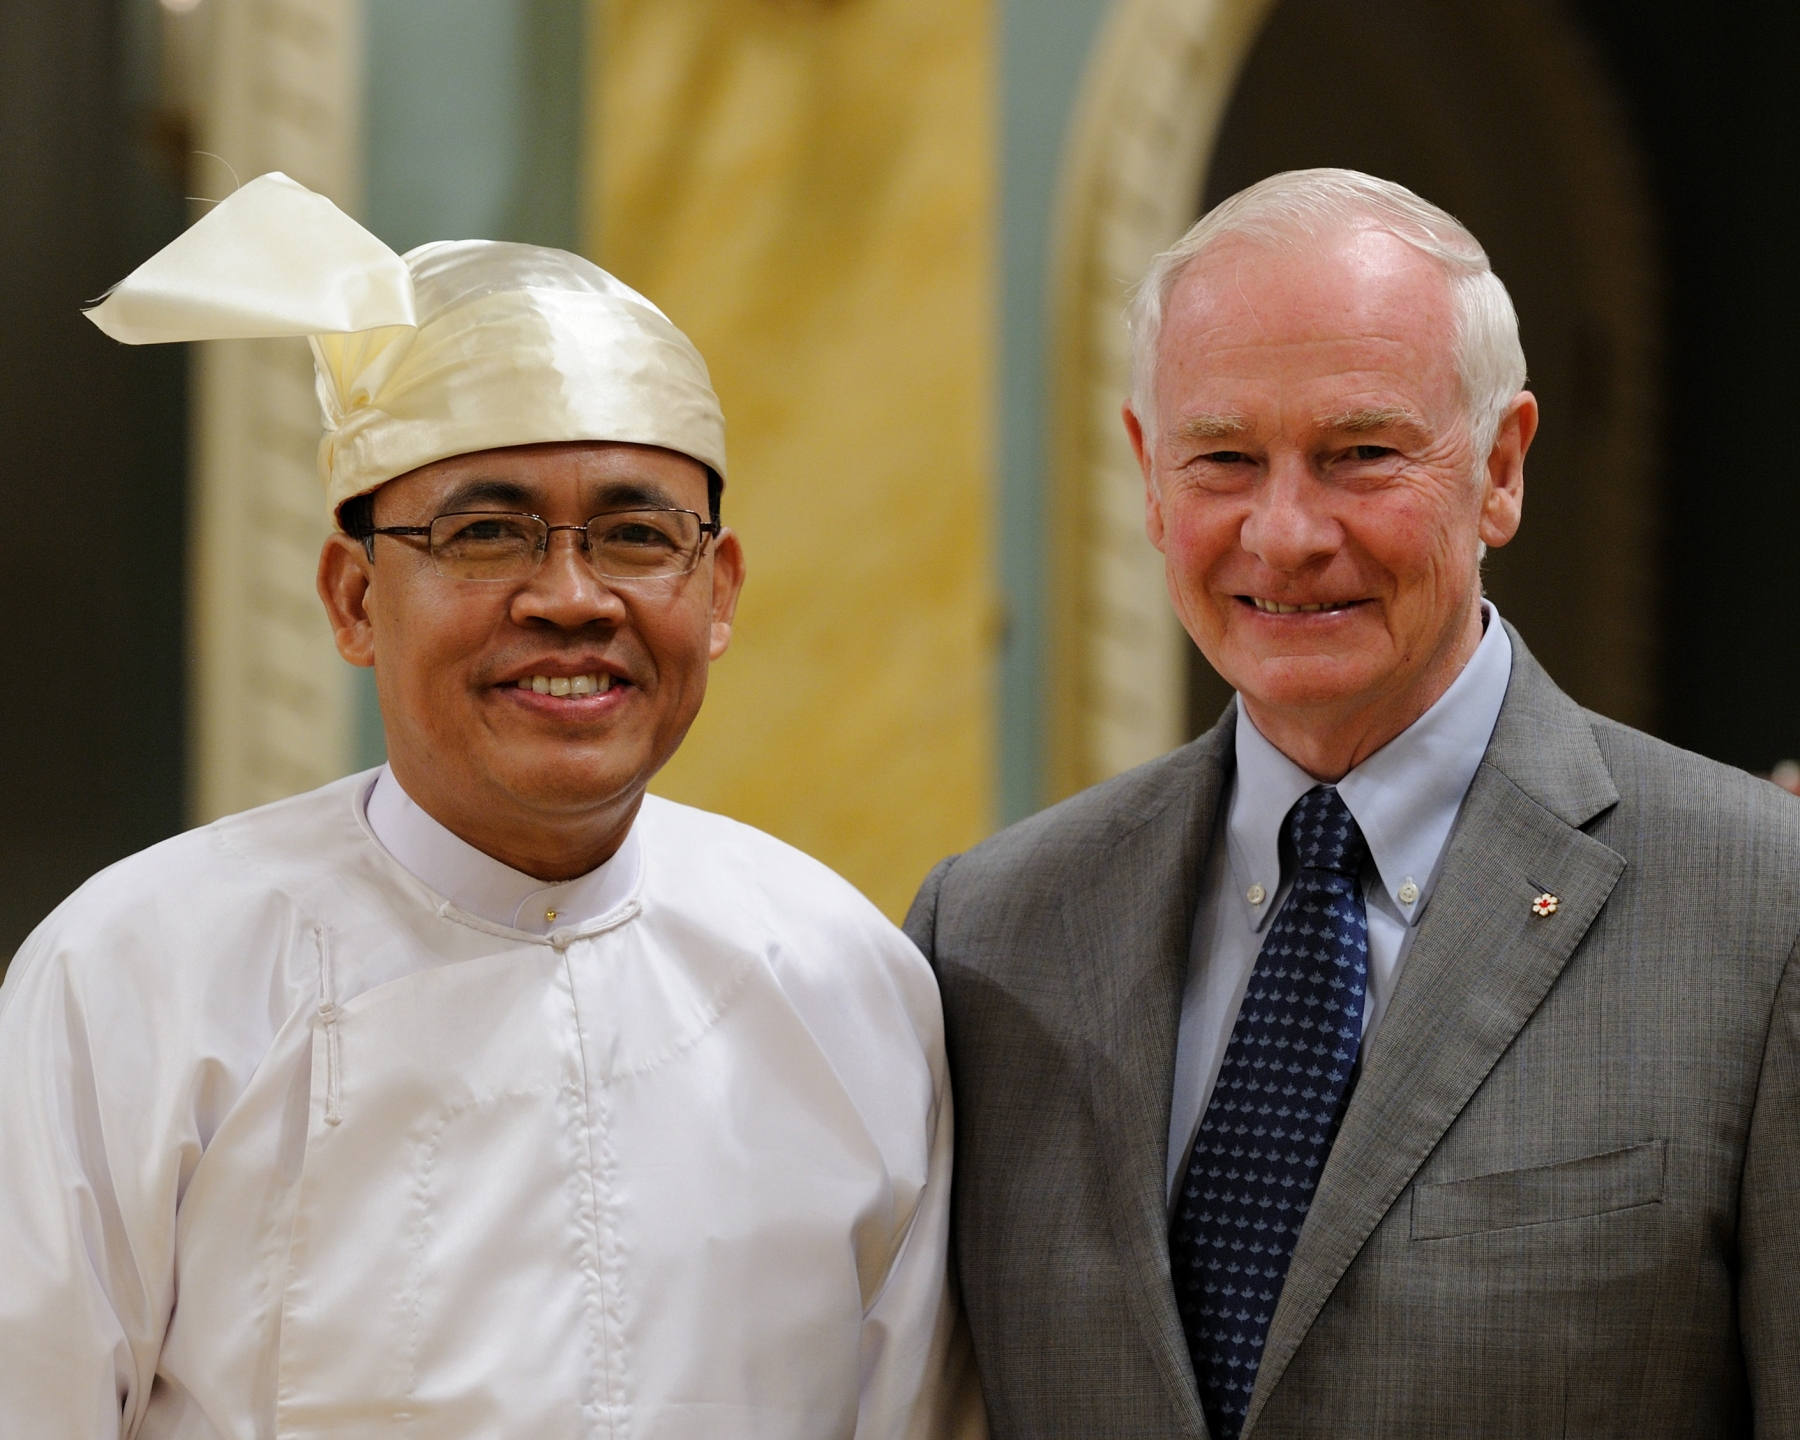 The Governor General received the credentials of His Excellency Kyaw Tin, Ambassador of the Republic of the Union of Myanmar.